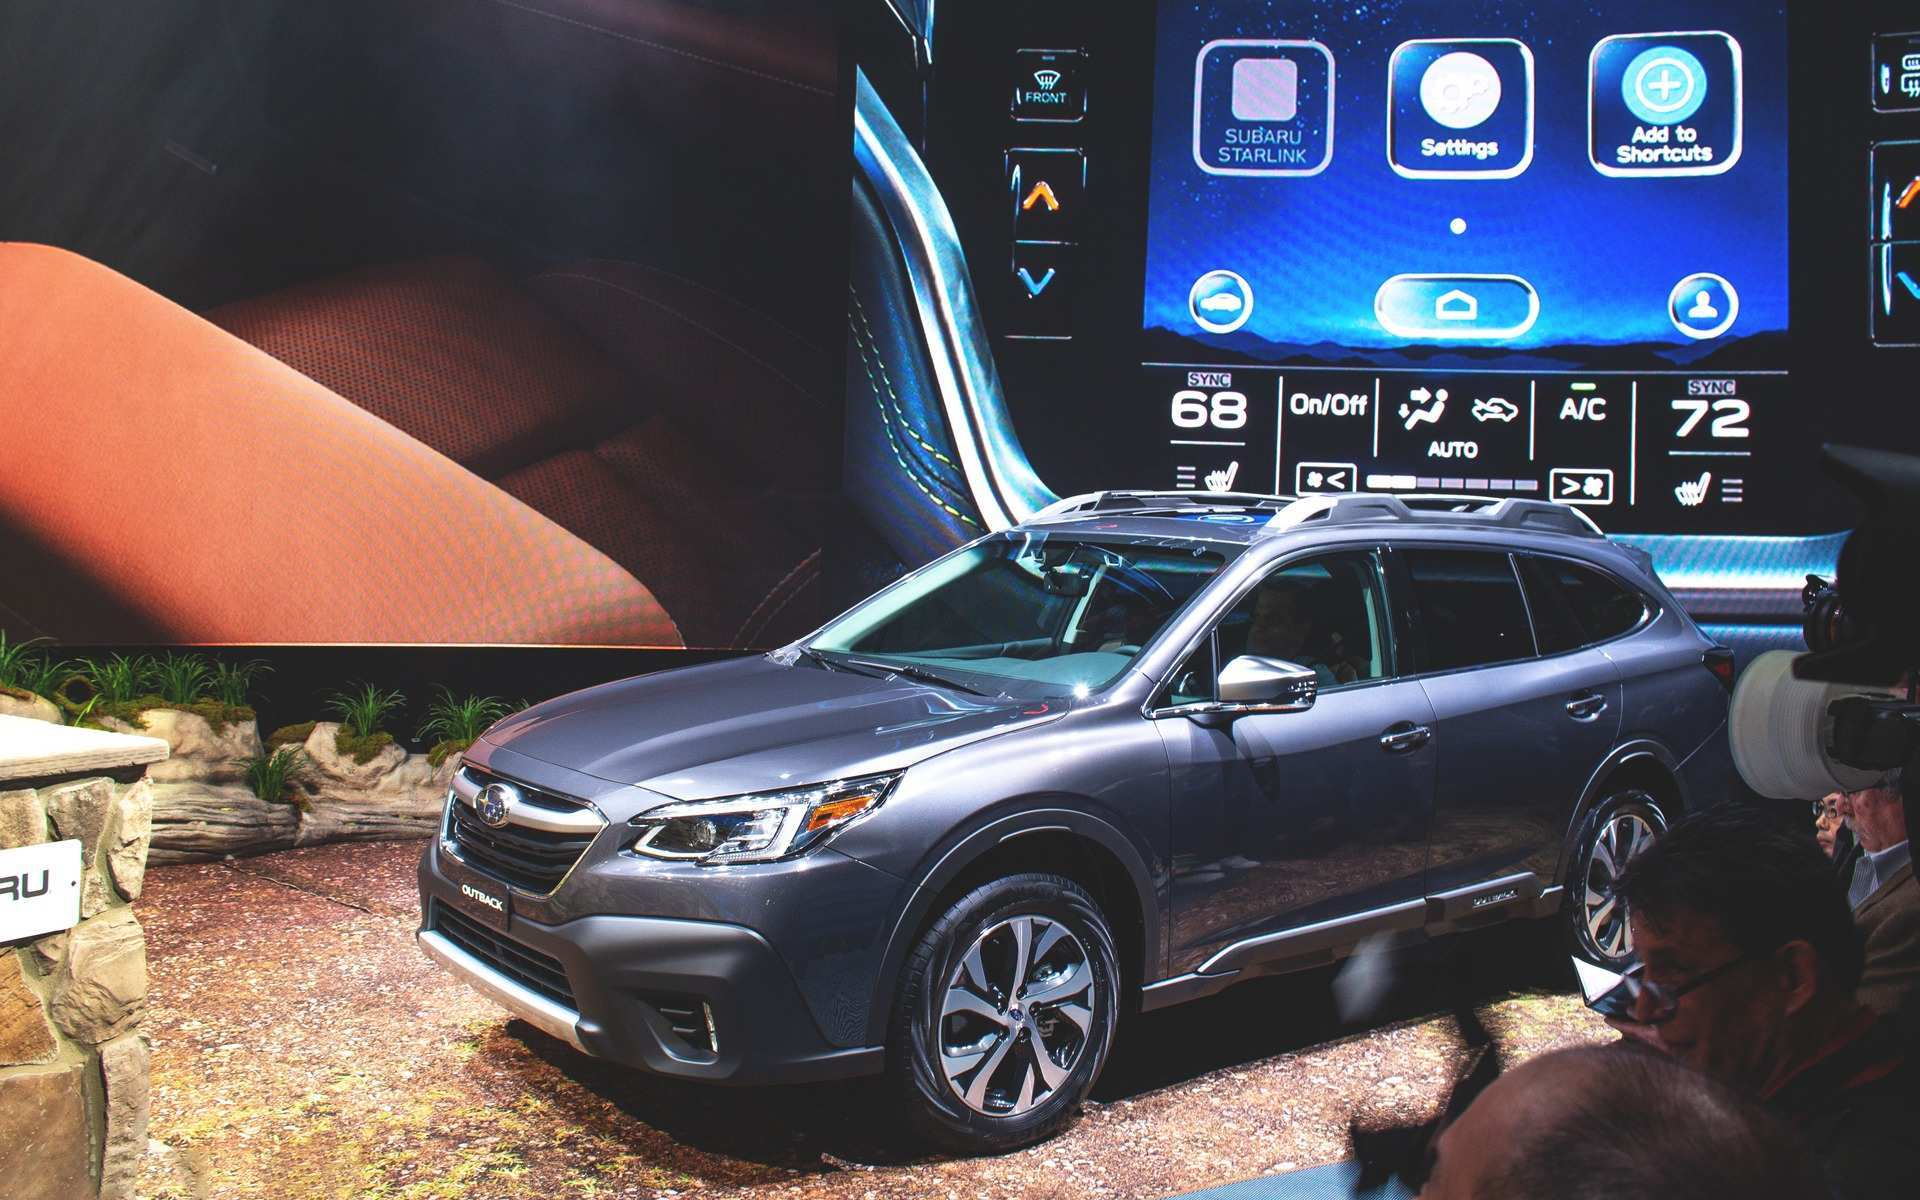 36 Great Subaru Outback 2020 Japan Performance with Subaru Outback 2020 Japan